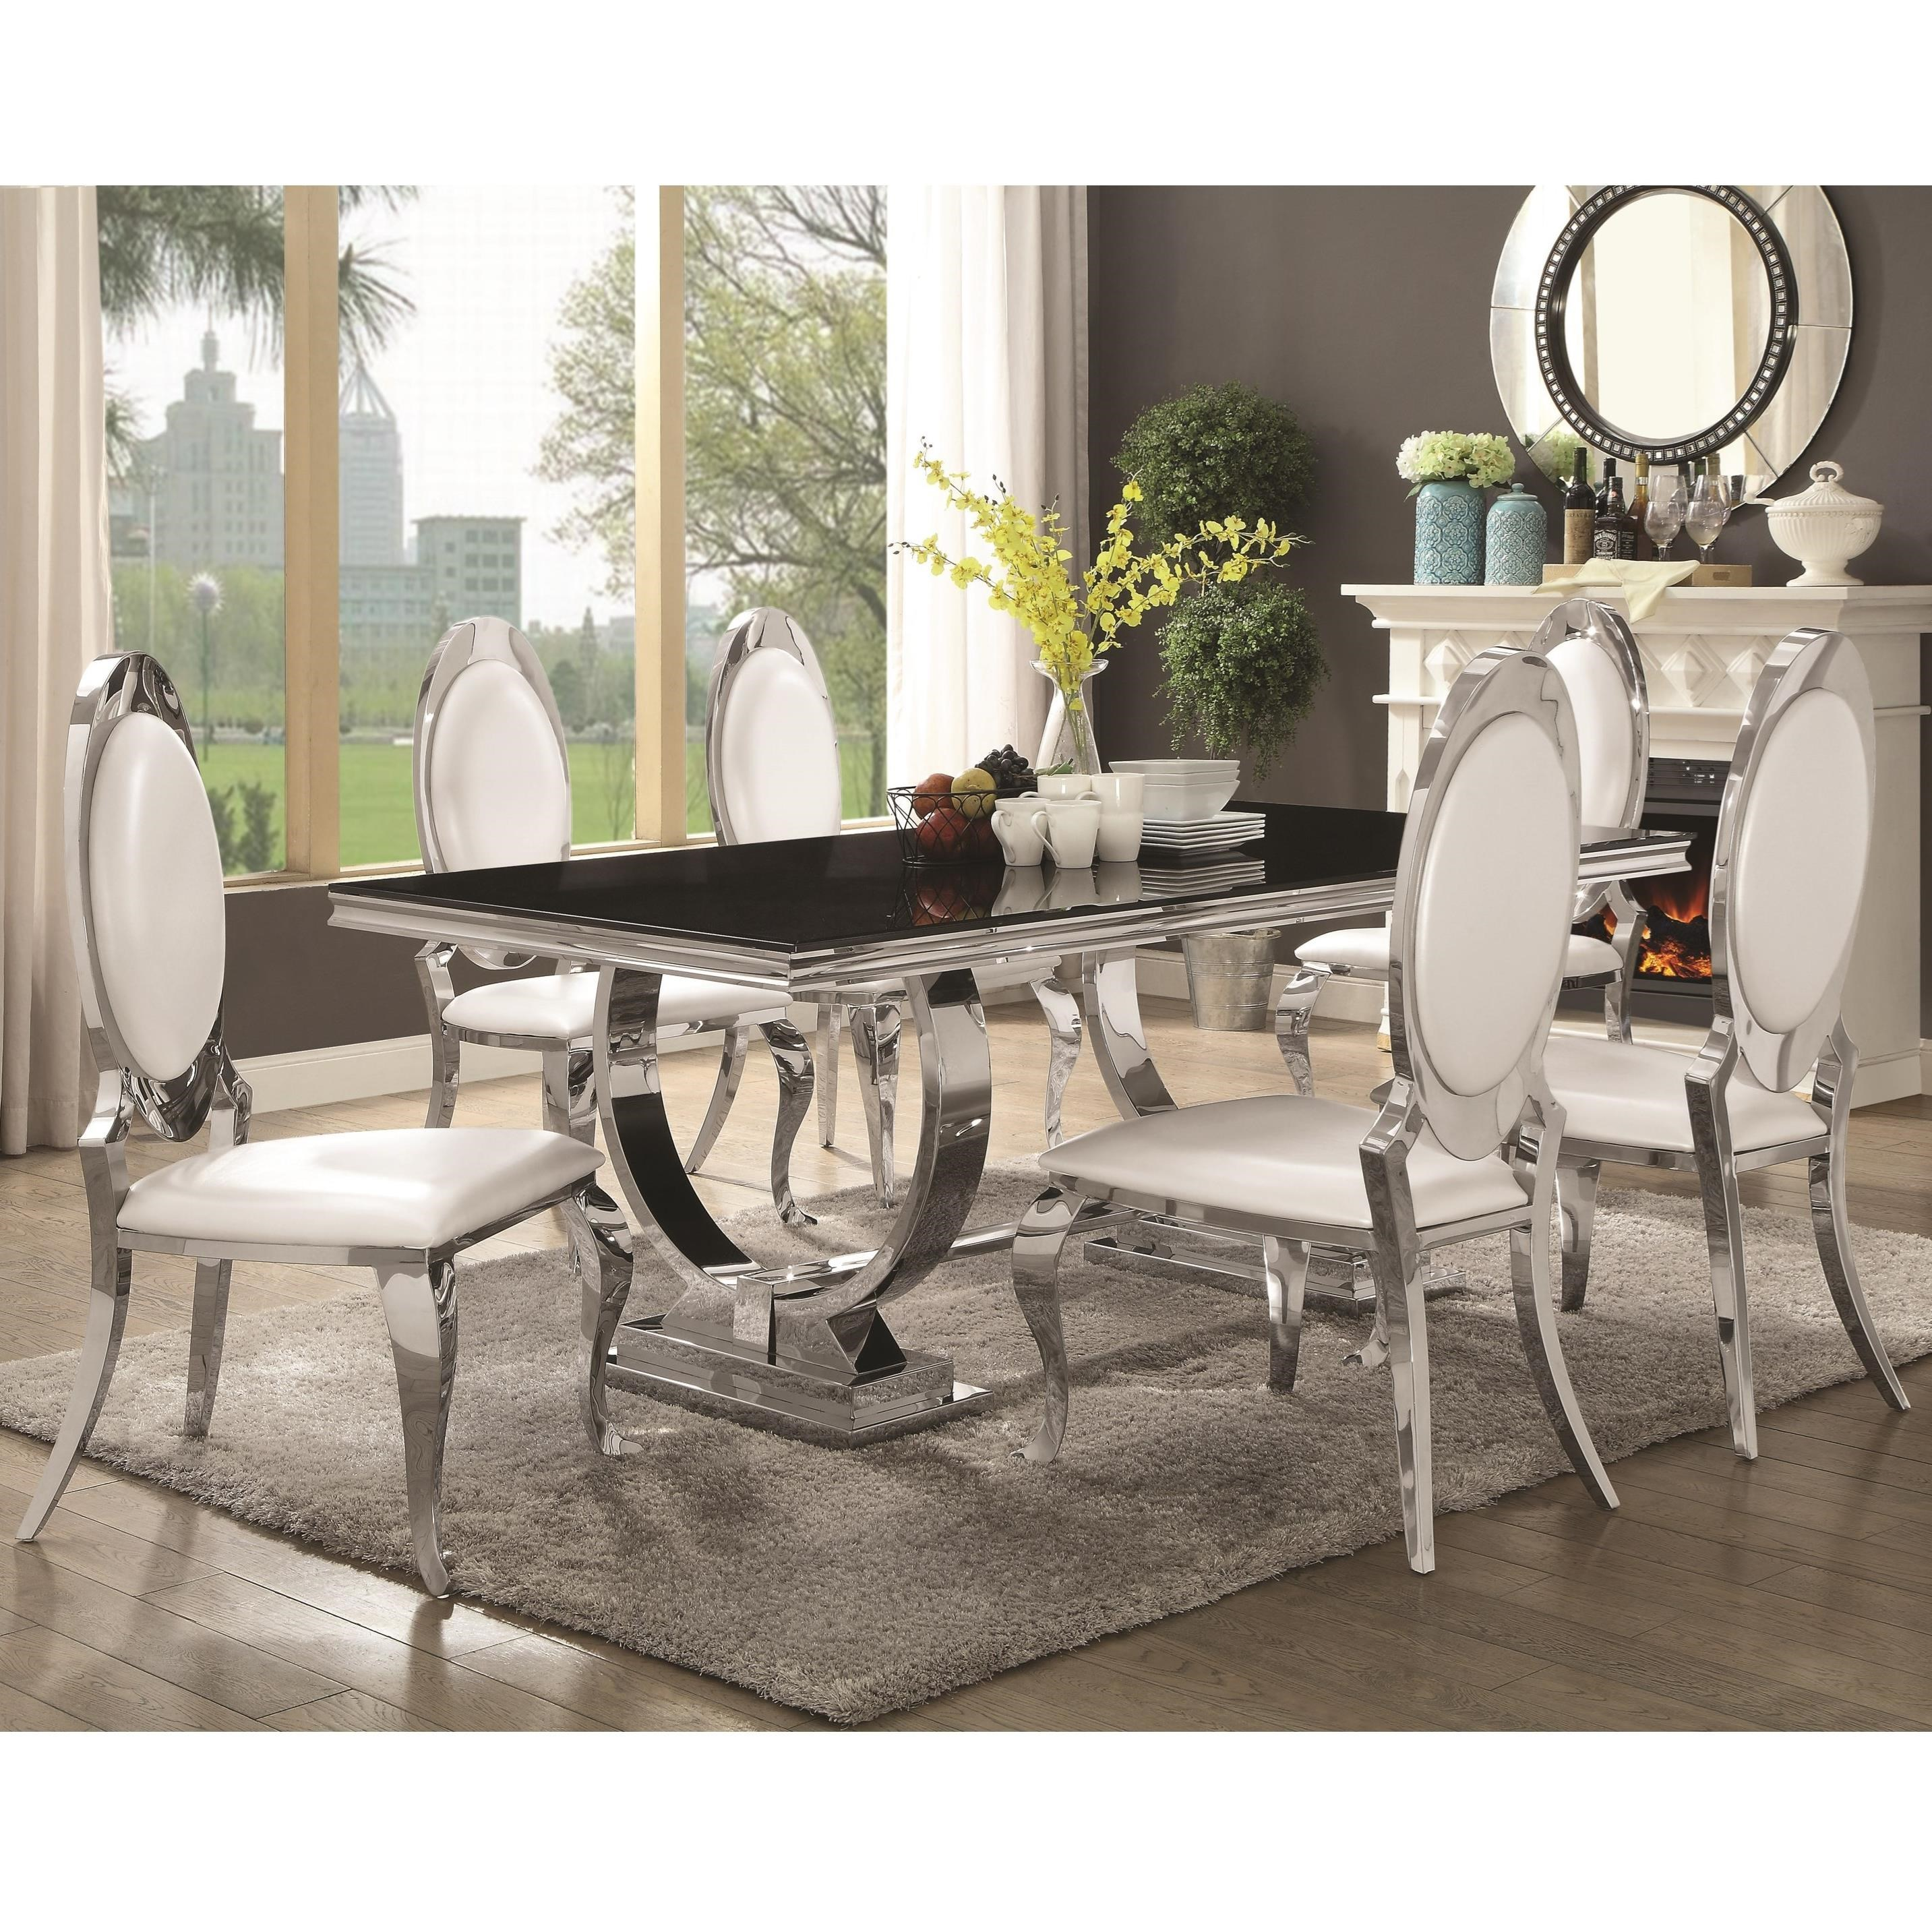 Coaster Antoine 7 Piece Dining Set With Stainless Steel Table | Miskelly  Furniture | Dining 7 (or More) Piece Sets